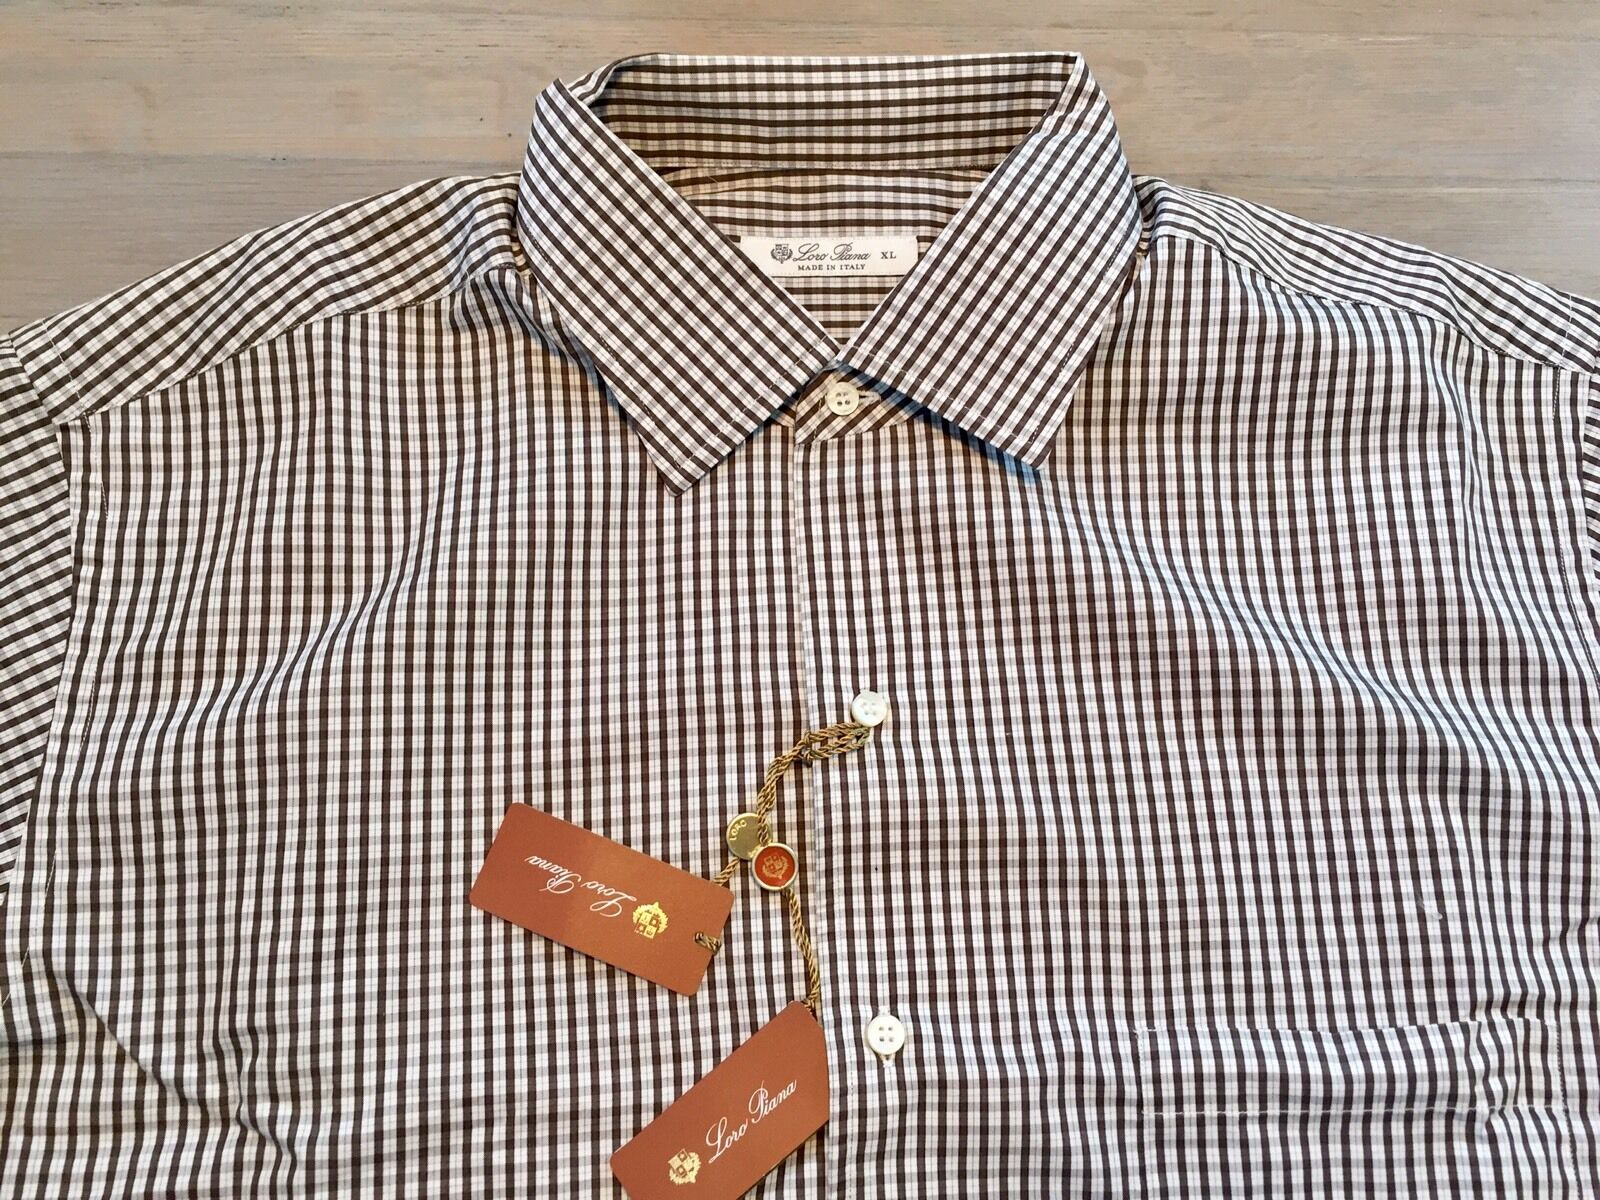 495  Lgold Piana Brown Plaid Long Sleeve Cotton Shirt Size XL Made in